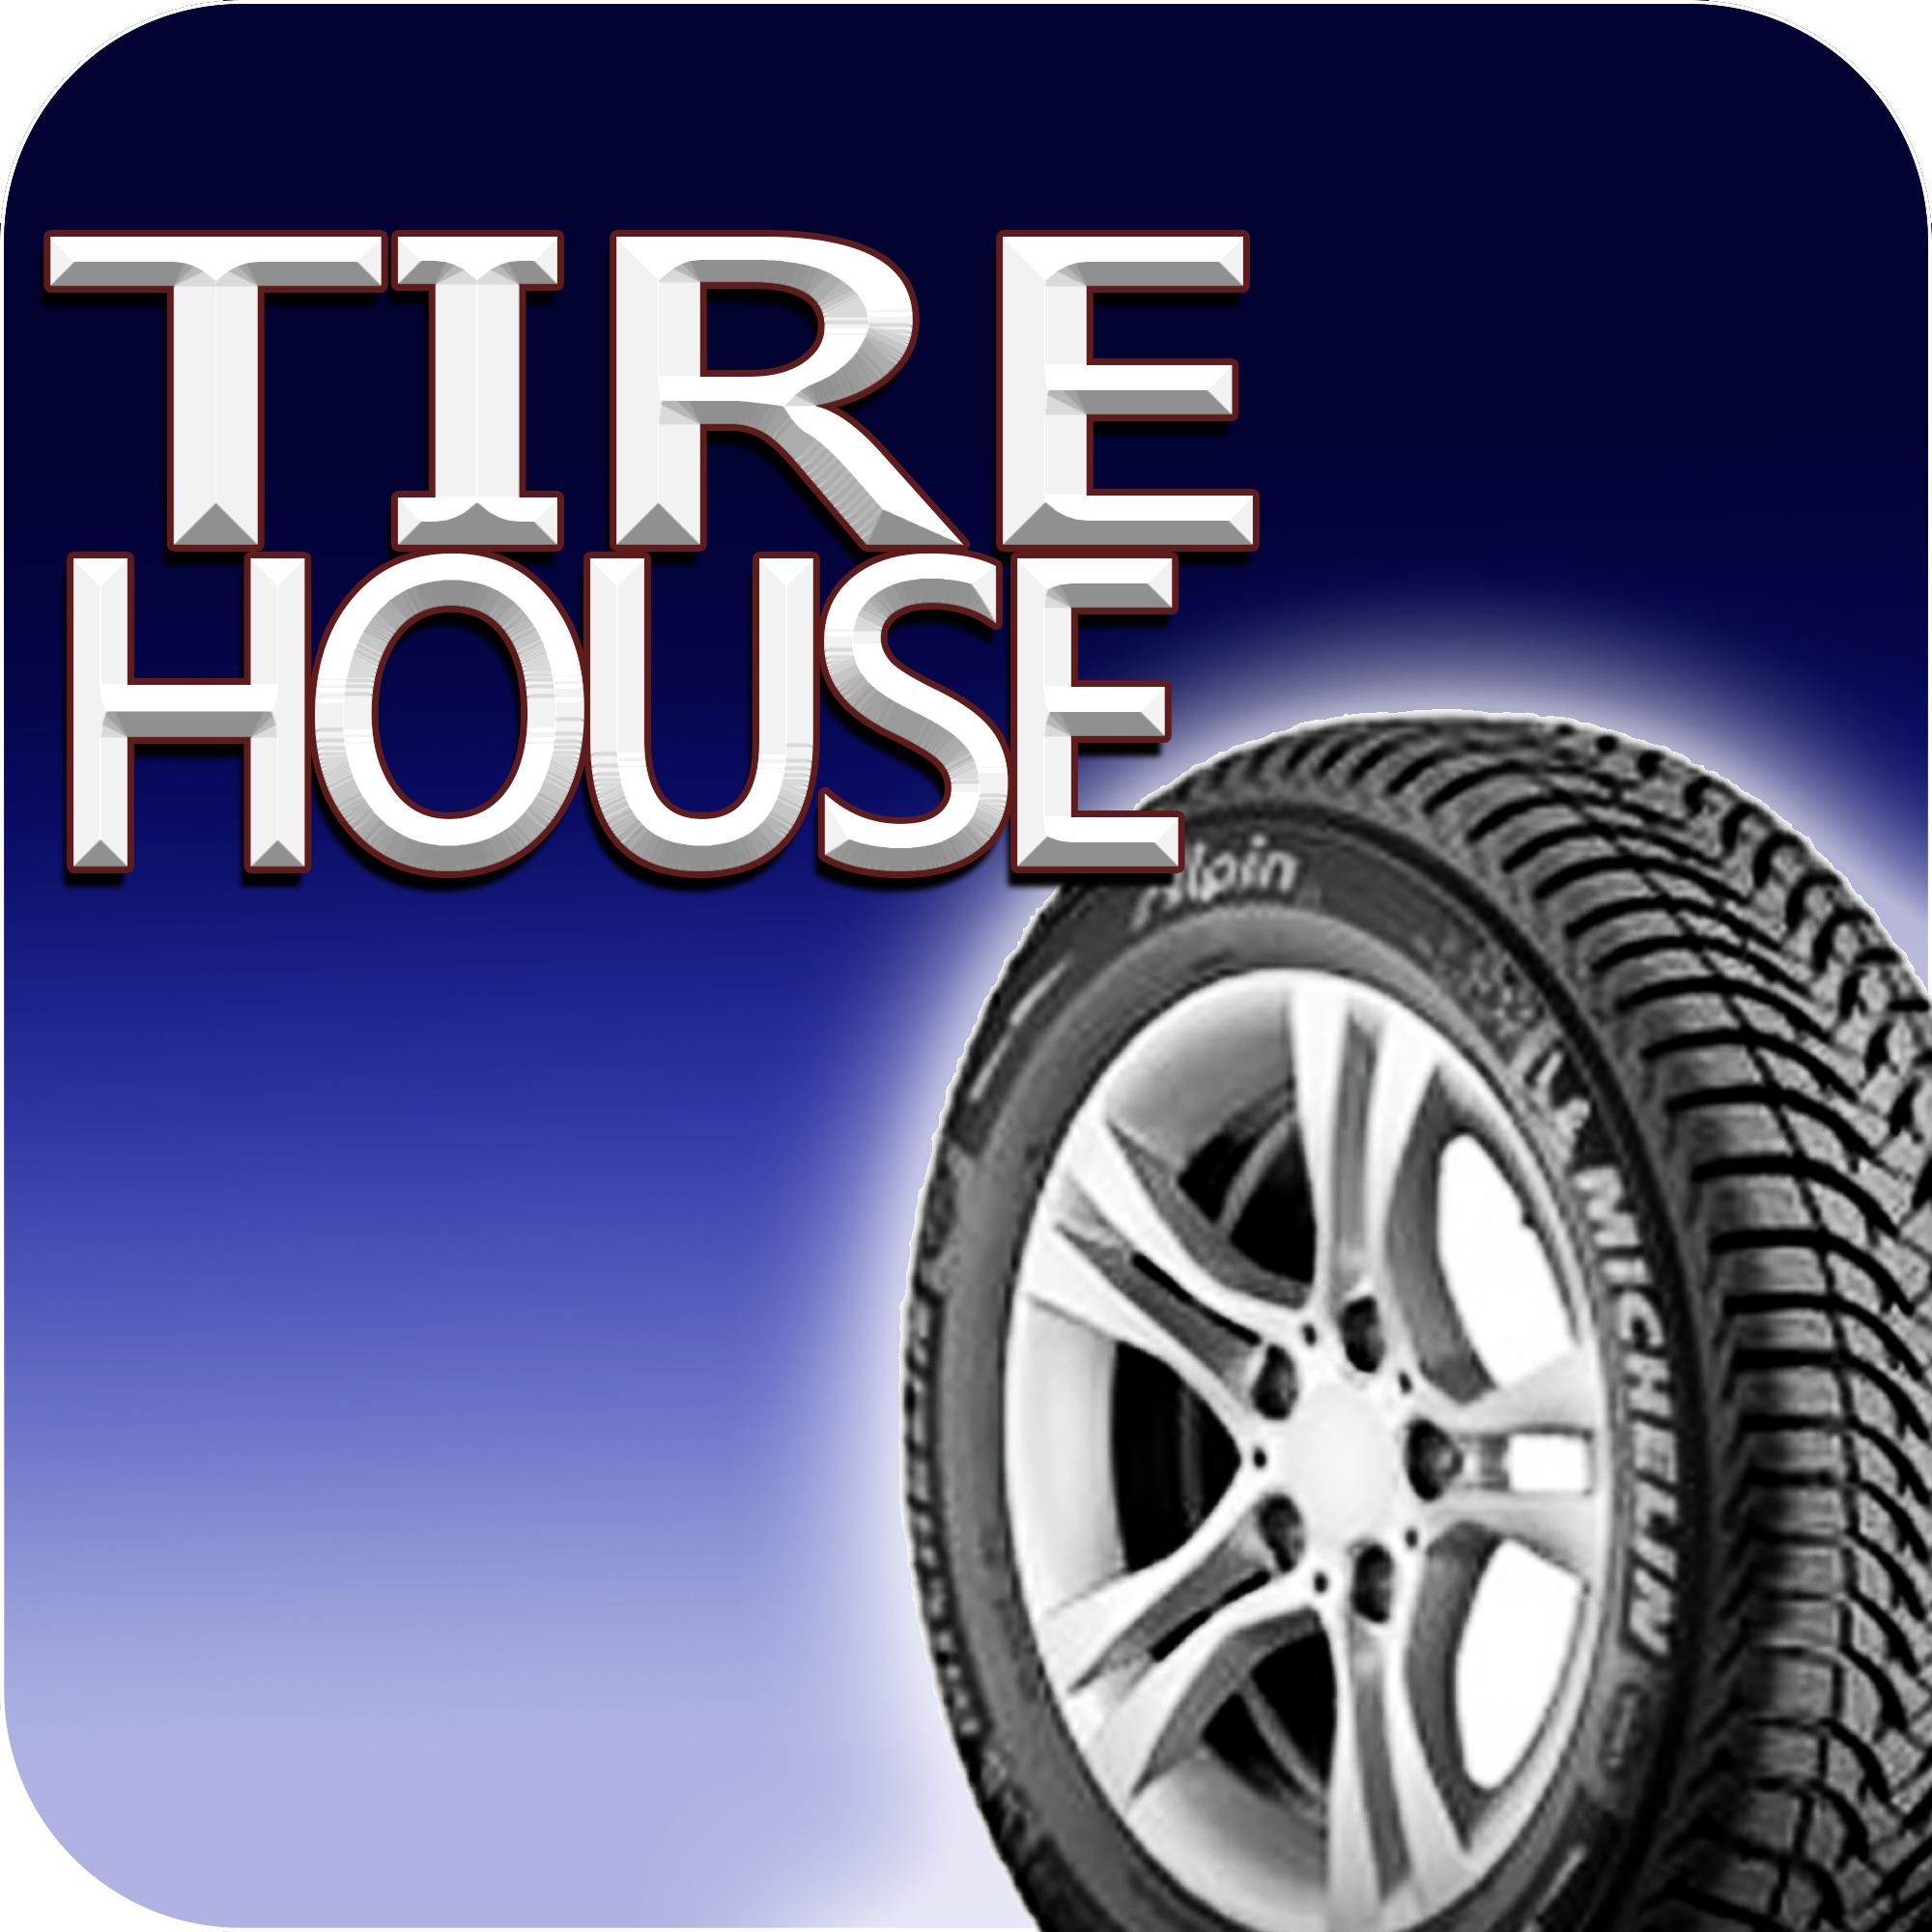 ... House 10431 Reisterstown Rd Owings Mills, MD Tire Dealers - MapQuest